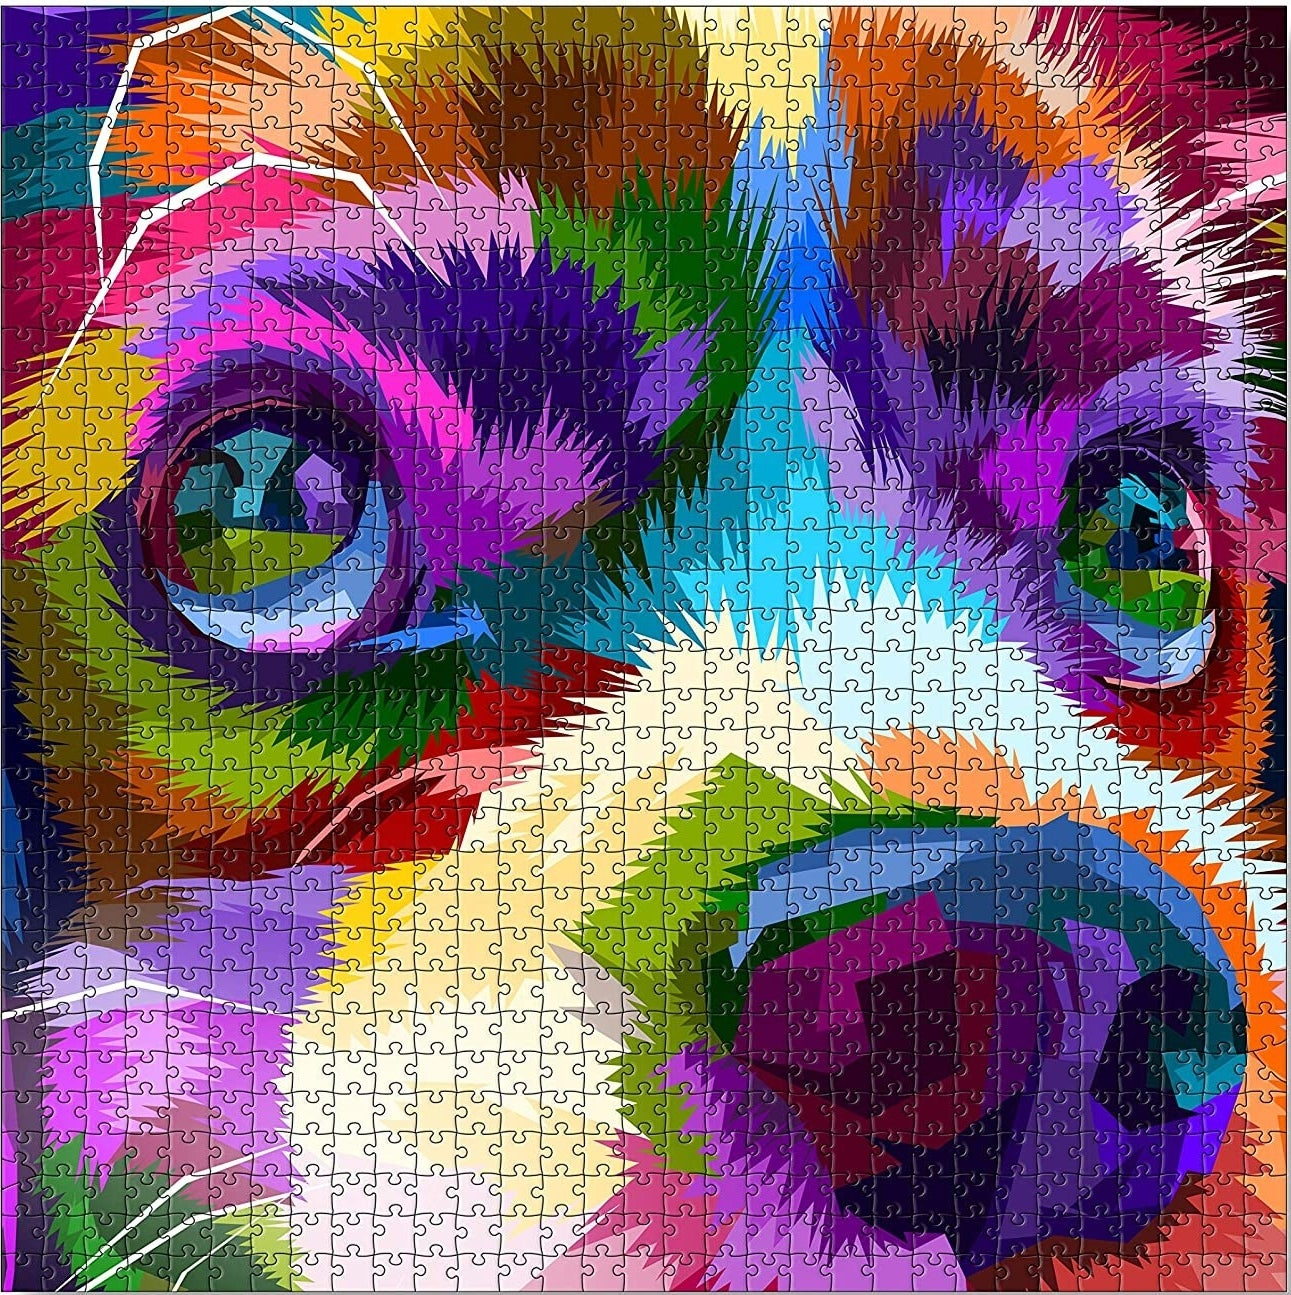 The 1,000 piece puzzle of an illustrated dog's face